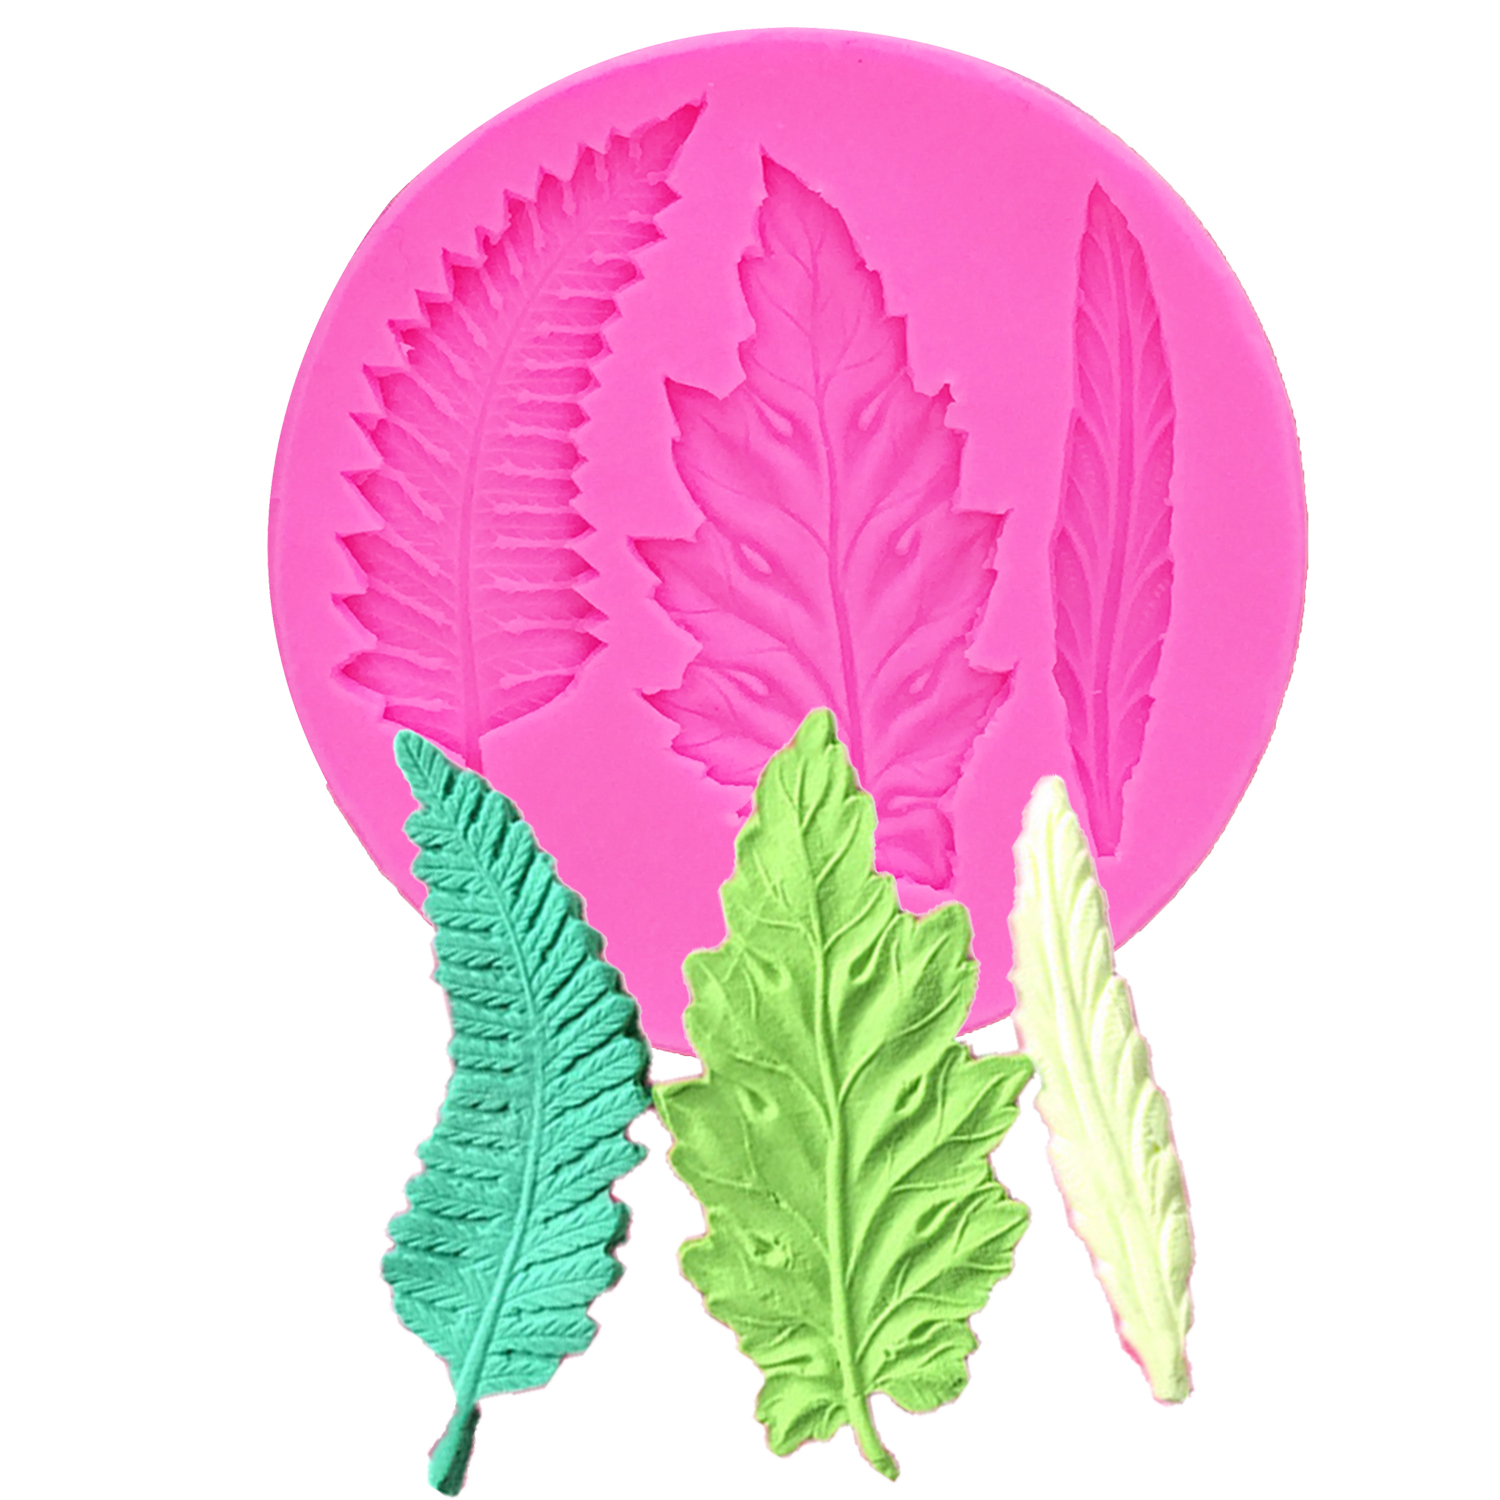 3D Tree Leaf Molds Sugarcraft Silicone Mold Turtle Leaf ...  Plane Tree Leaf Silicone Molds